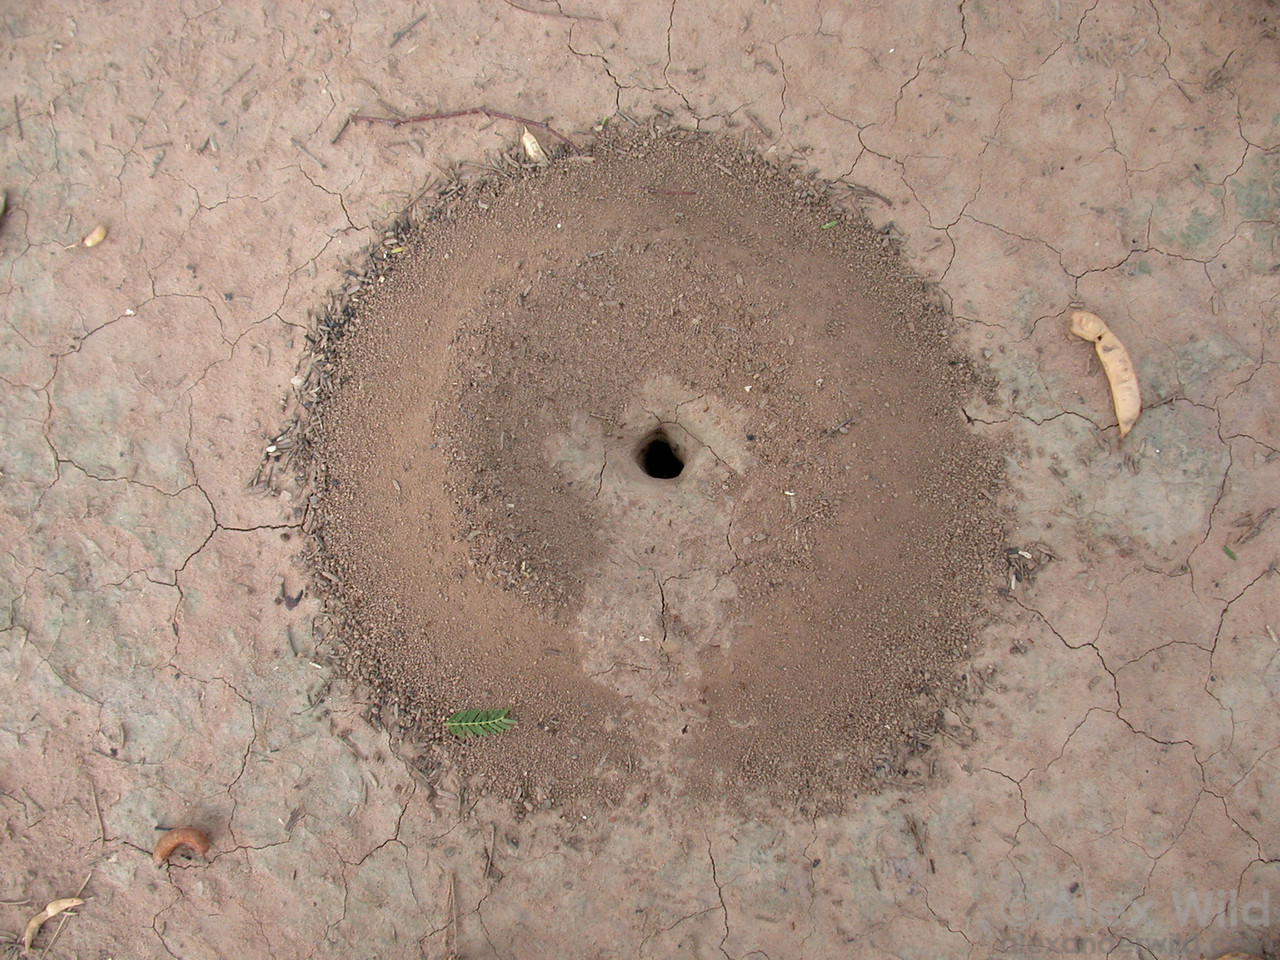 A nest of Pheidole in the dry chaco.  Mcal. Estigarribia, Boquerón, Paraguay